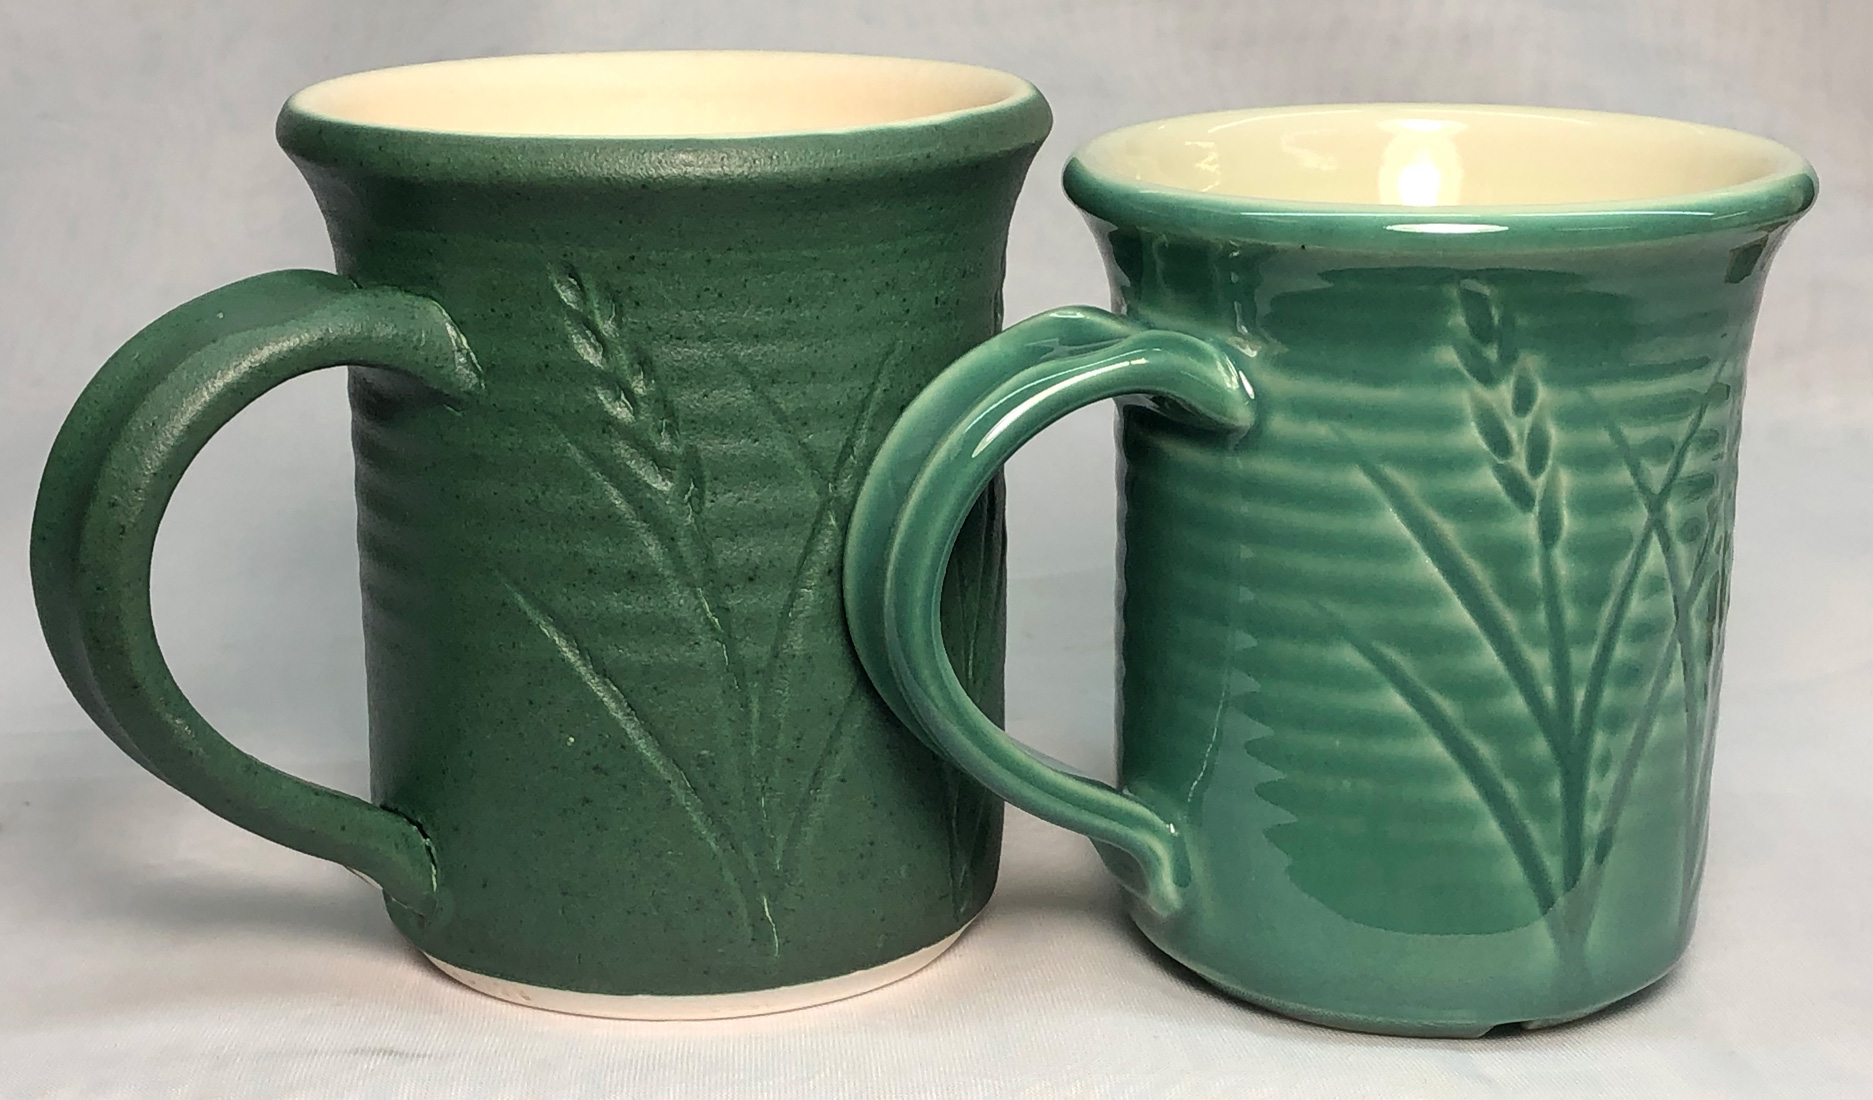 The same glaze fired at 1850F and 2200F